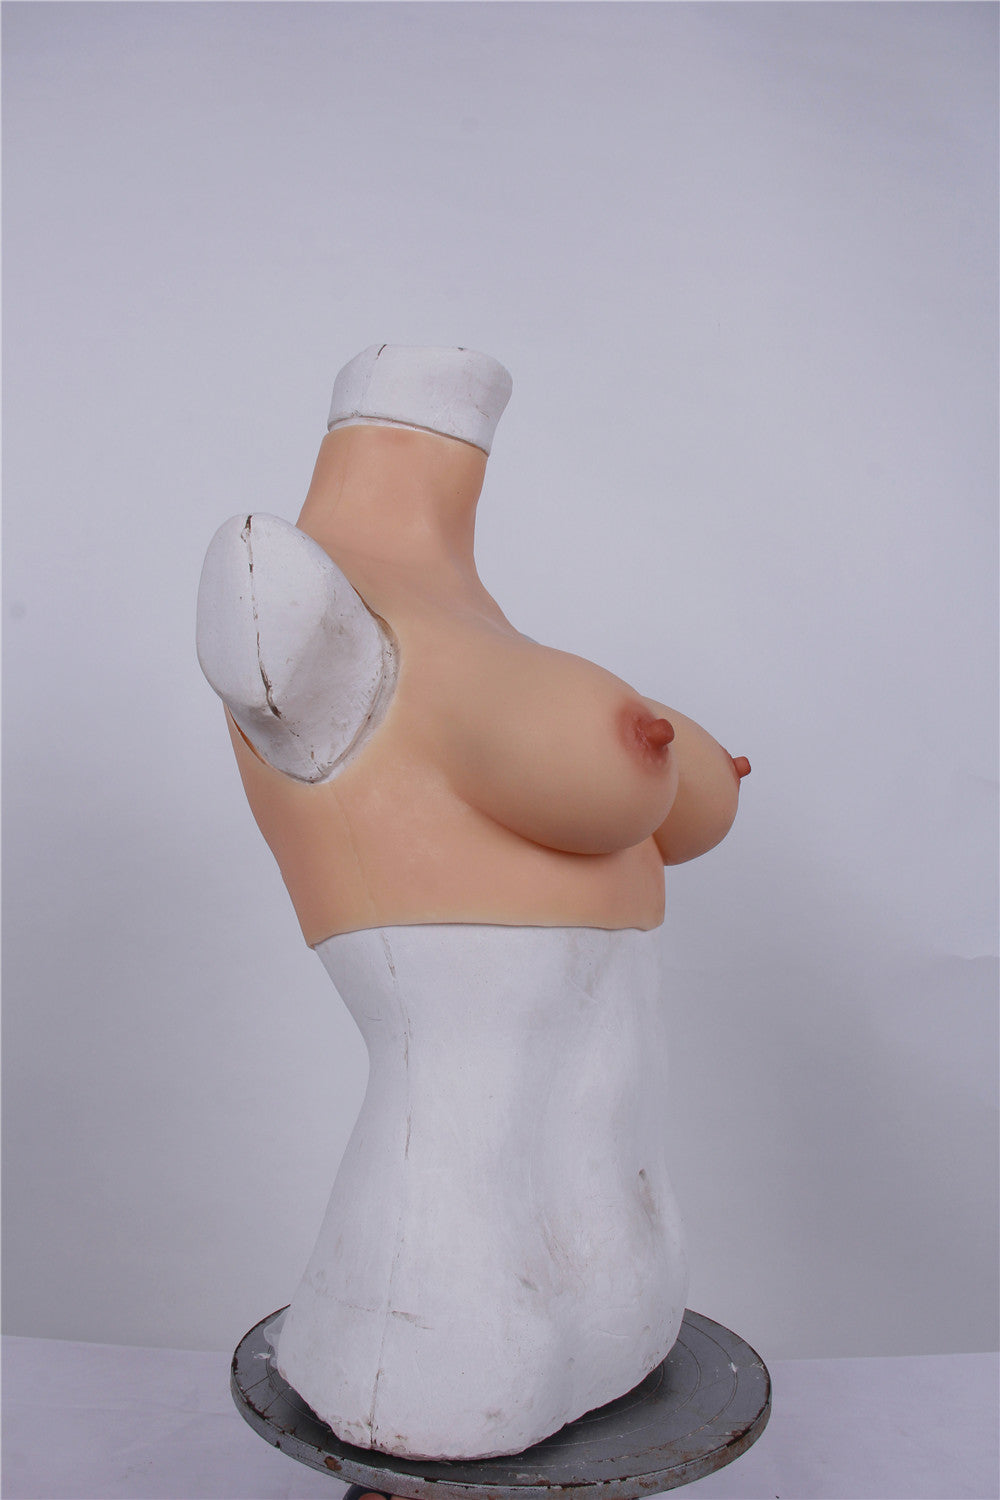 TOP QUALITY! Silicone Breast Forms - High collar